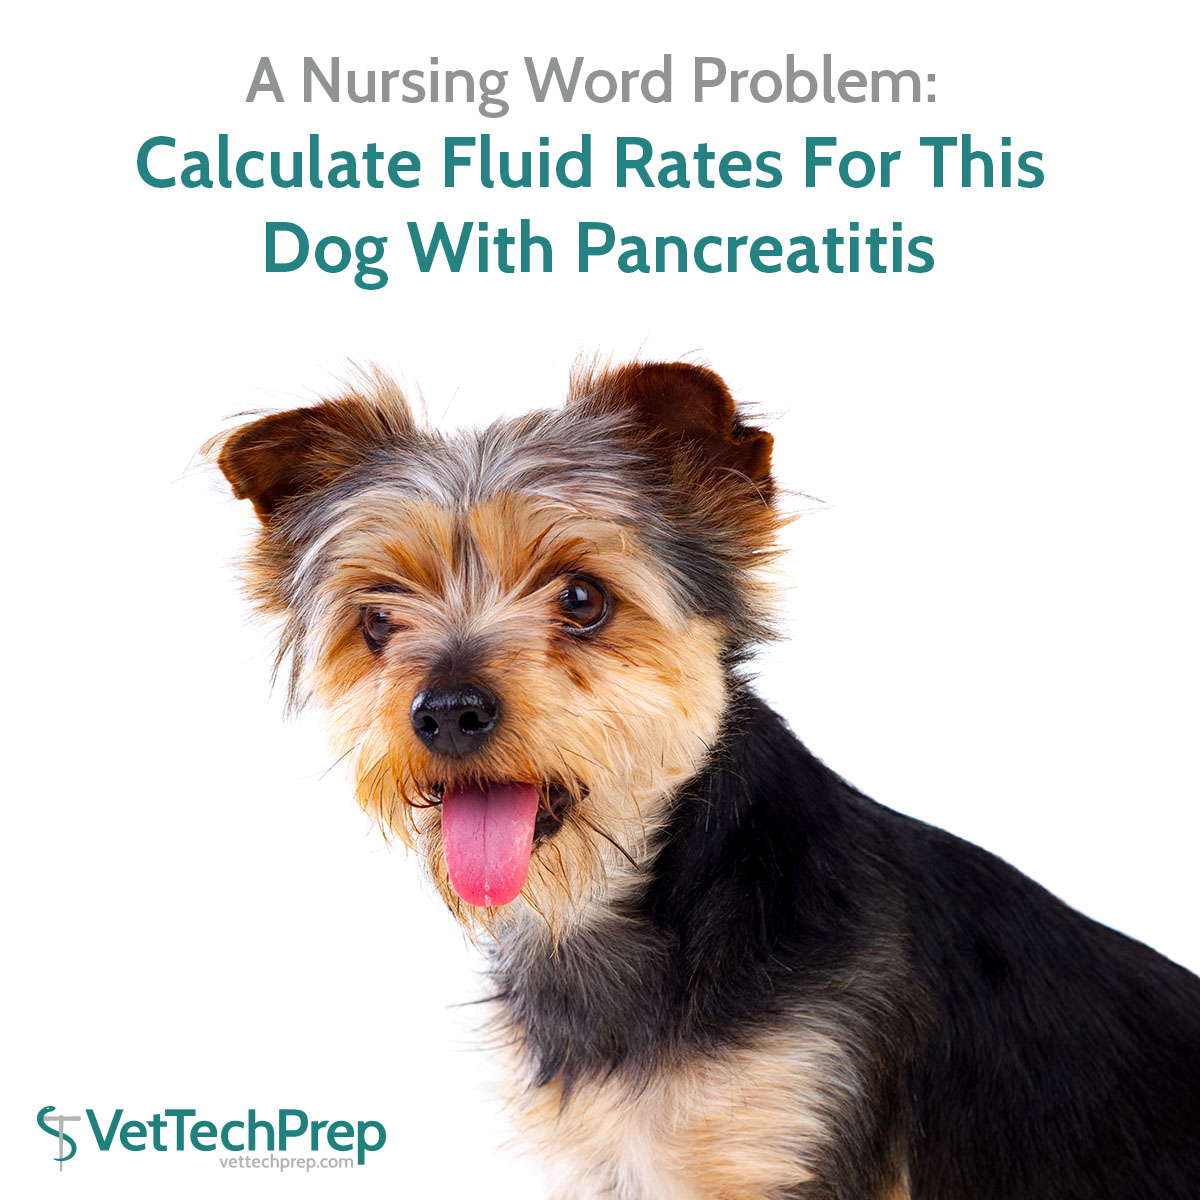 Calculate Fluid Rates For This Dog With Pancreatitis